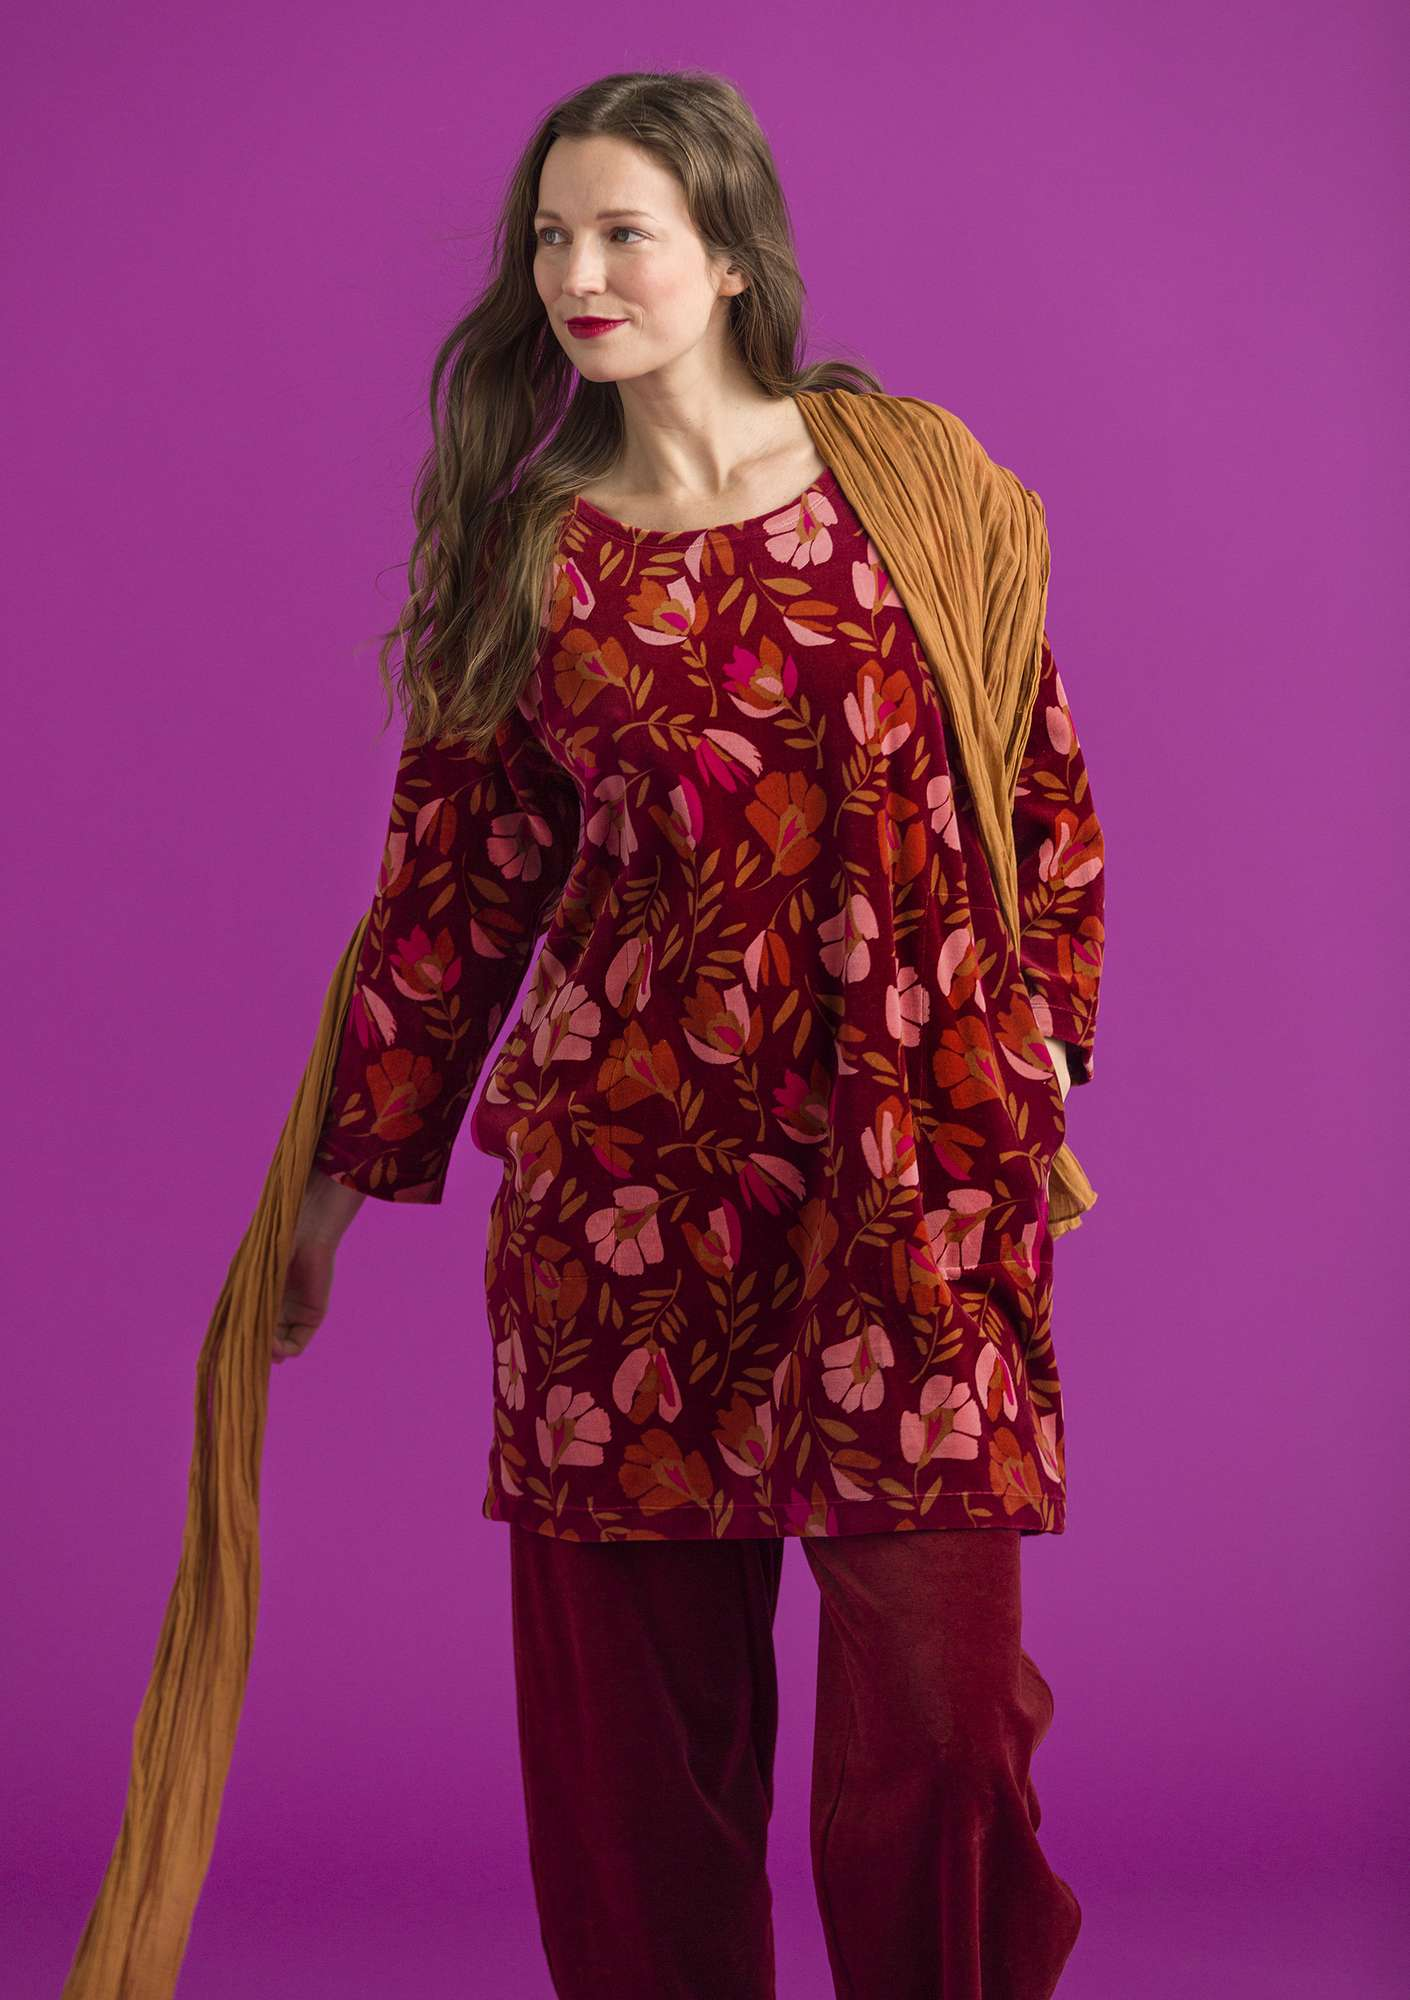 """Vurma"" velour tunic in organic cotton/polyester henna/patterned"